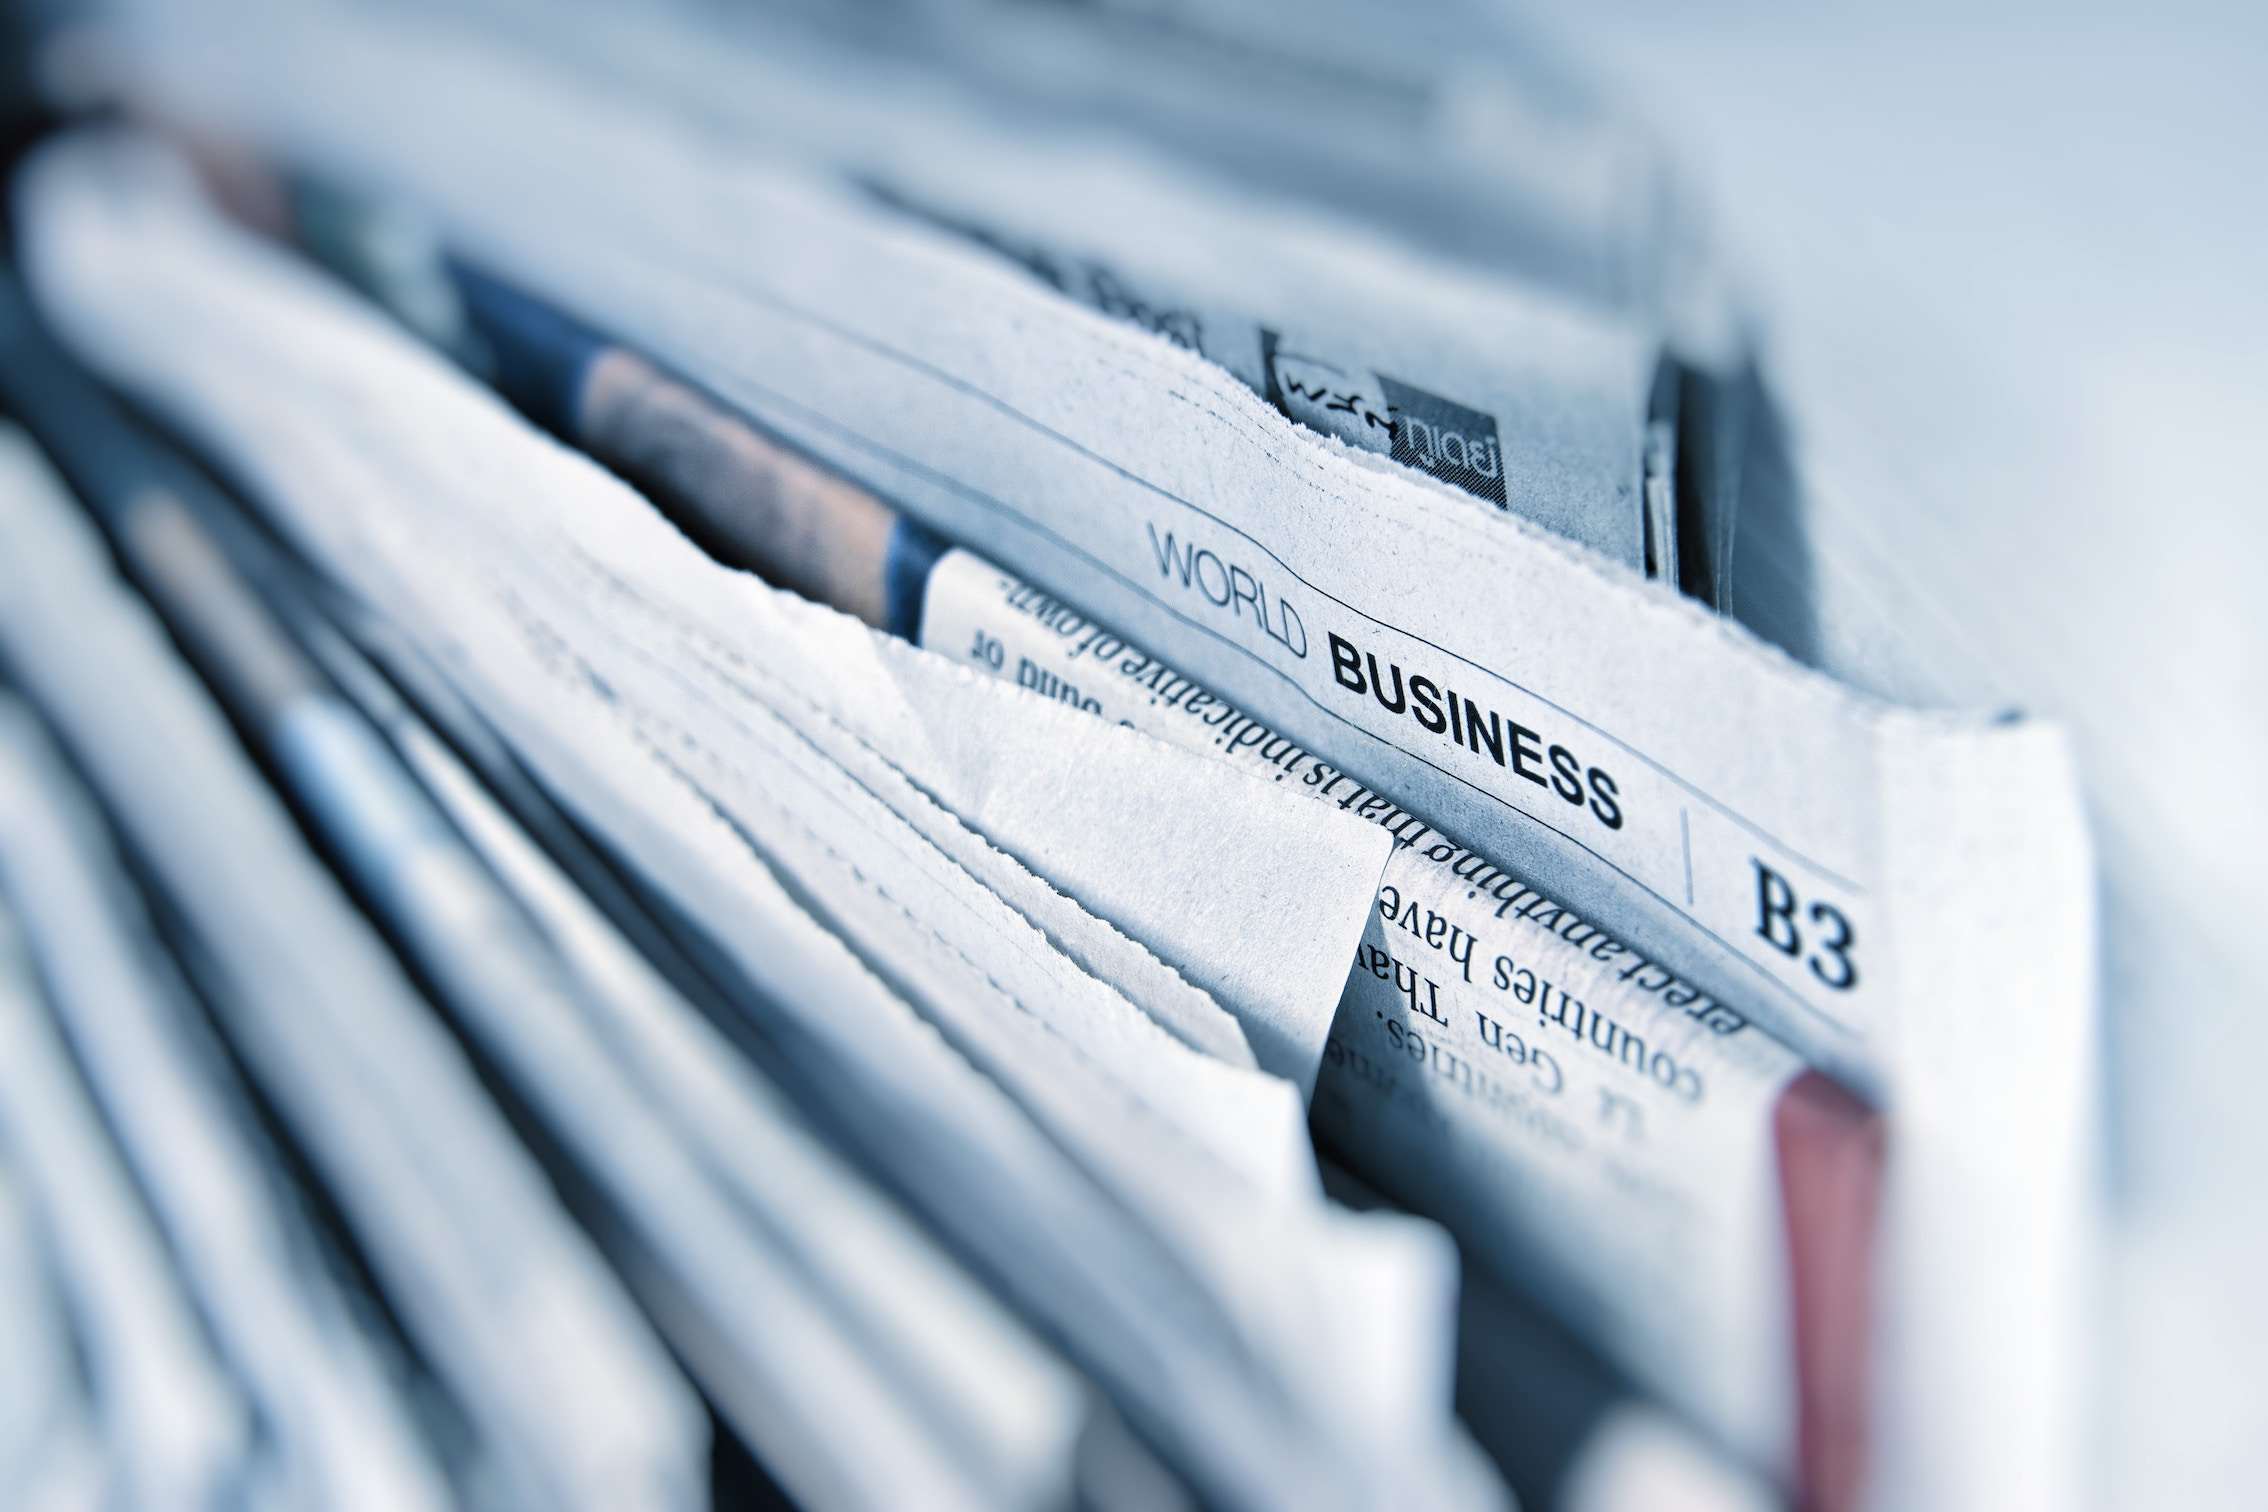 How does a journalist choose what press releases to publish?